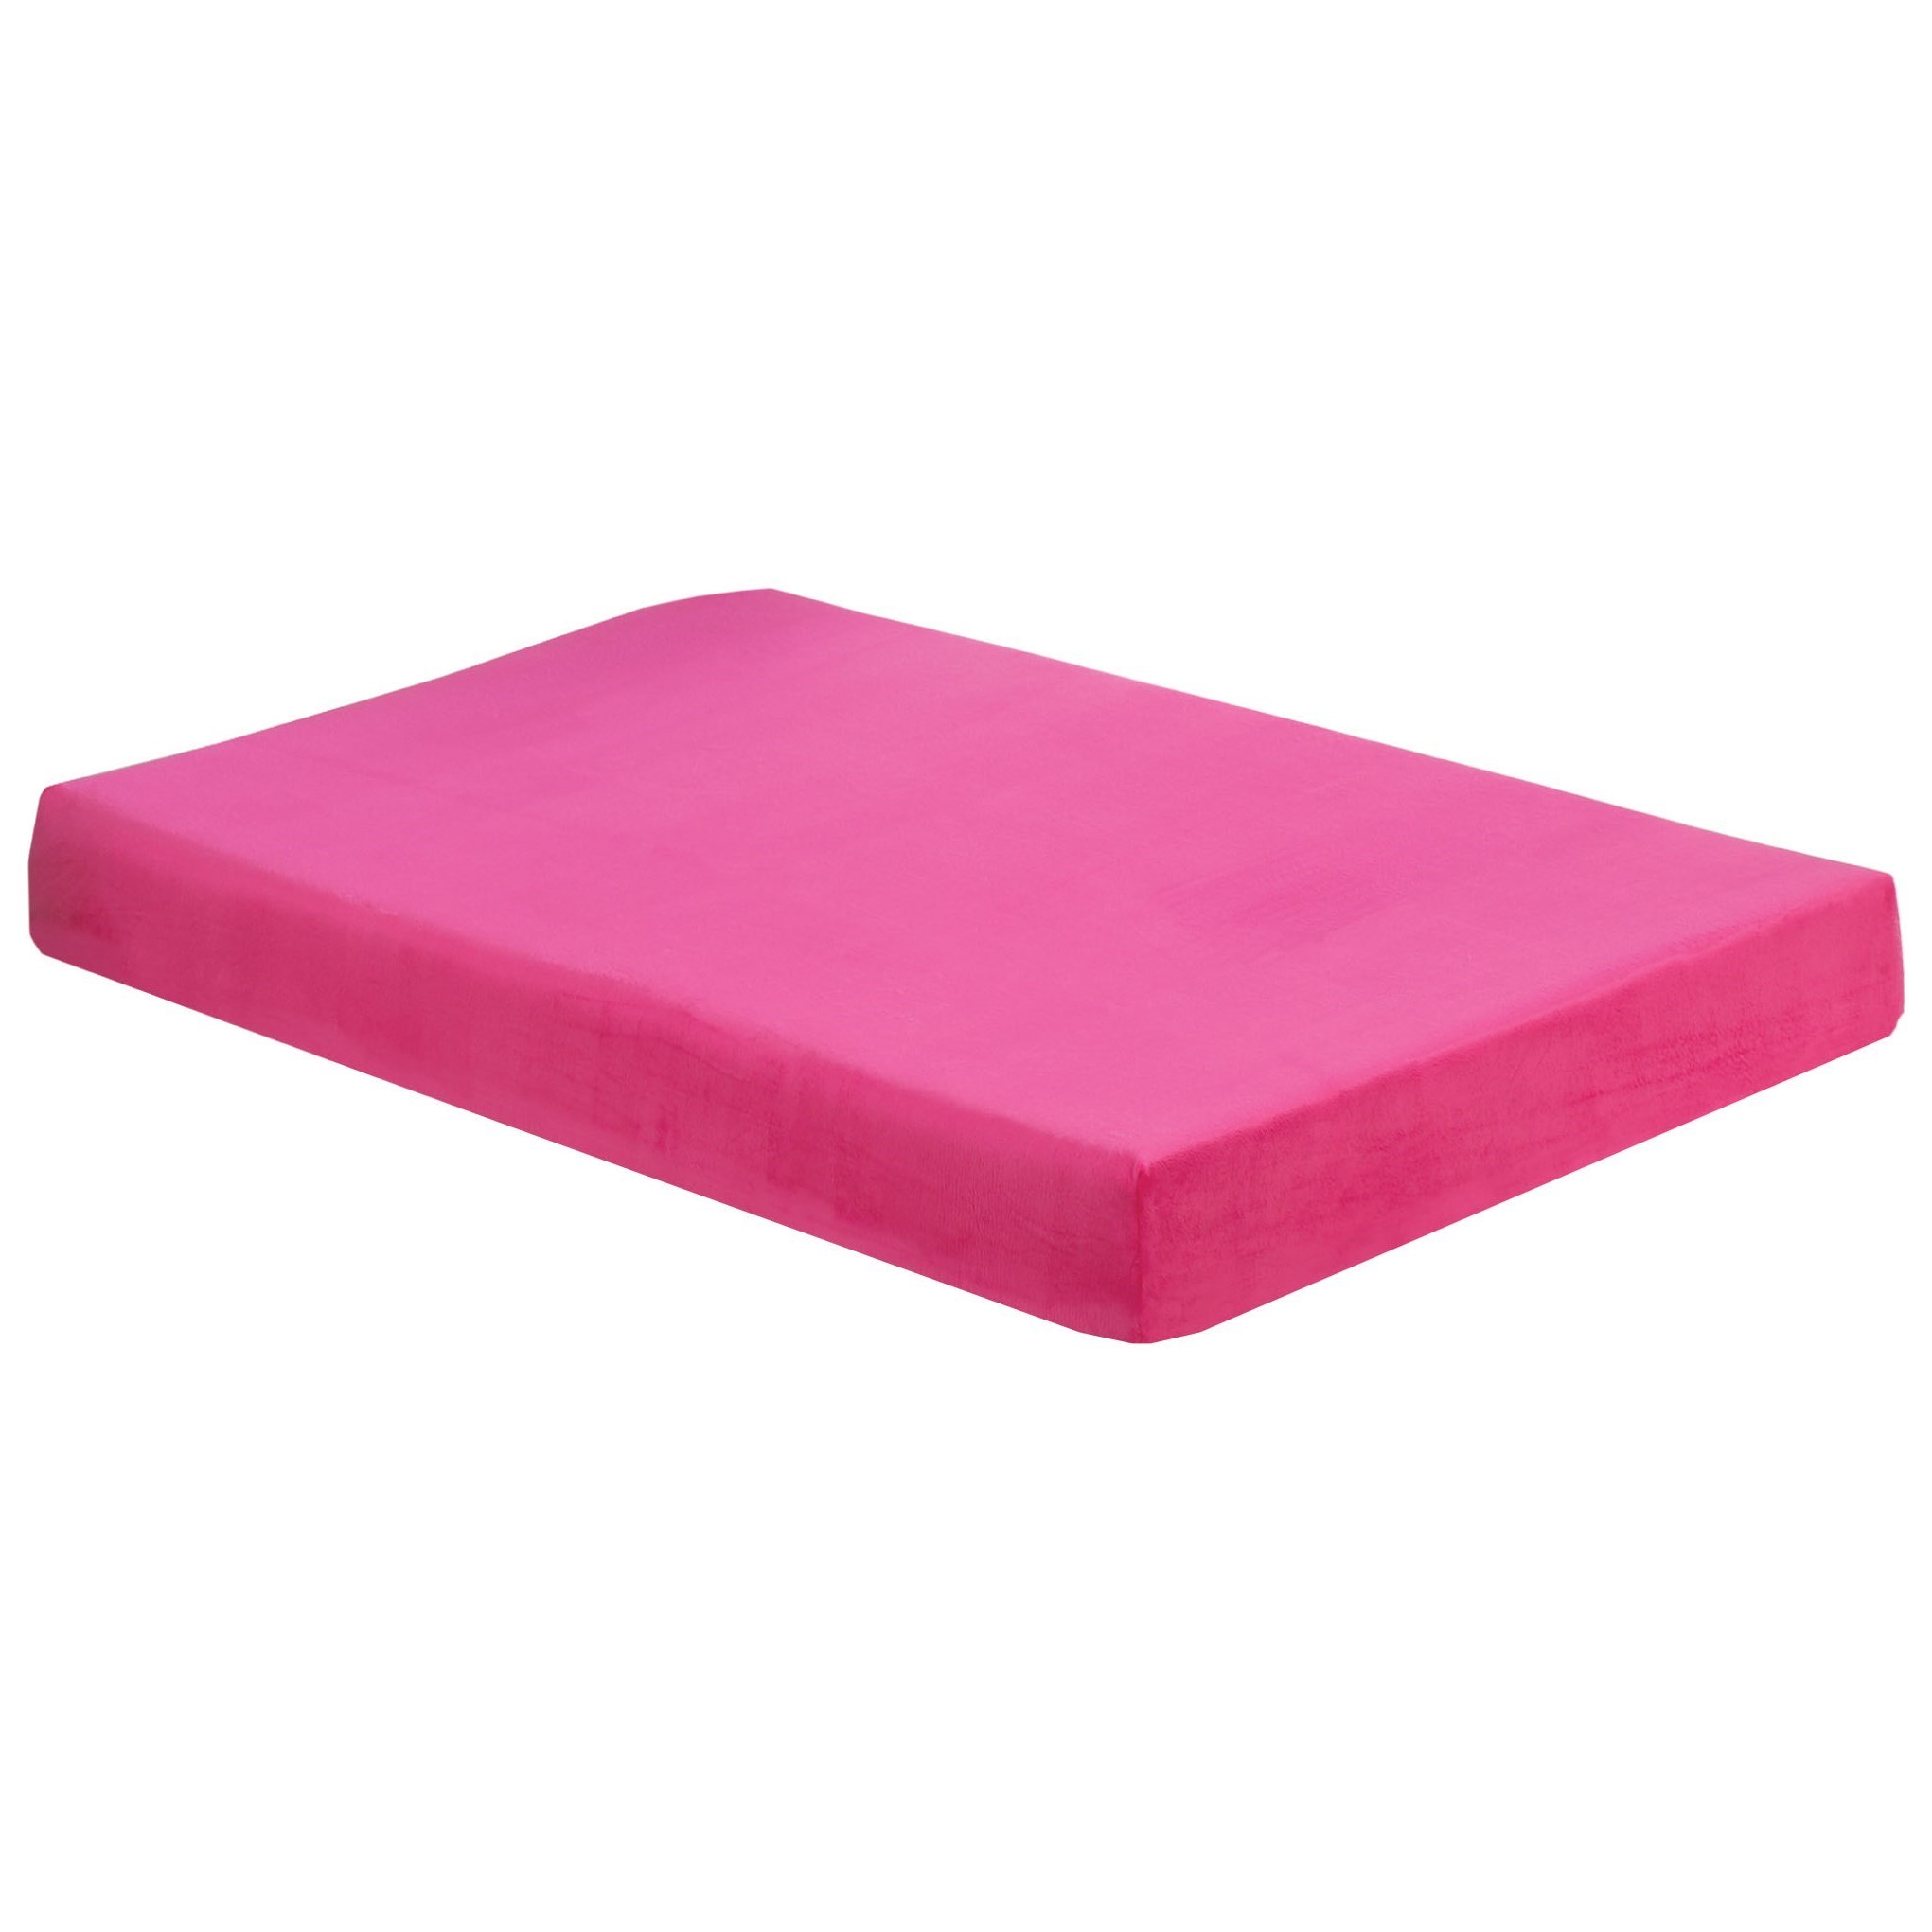 "Full 7"" Raspberry Memory Foam Mattress"